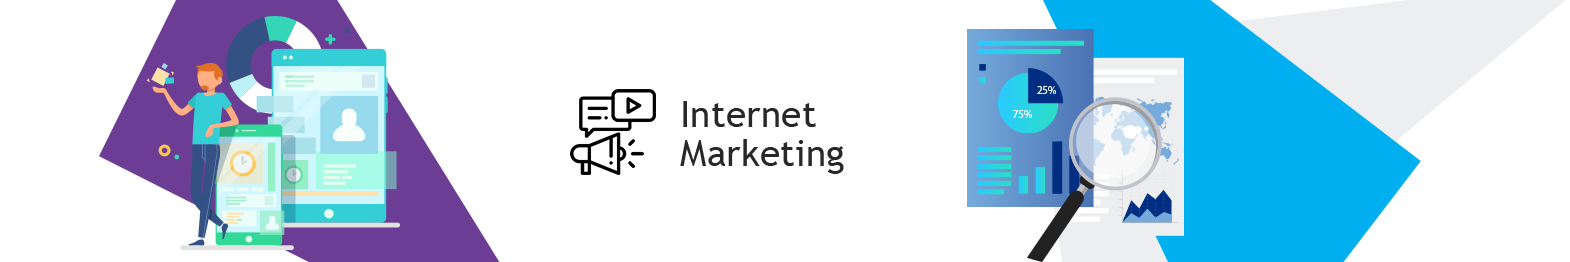 Internet Marketing. Internet marketing services. Order online marketing